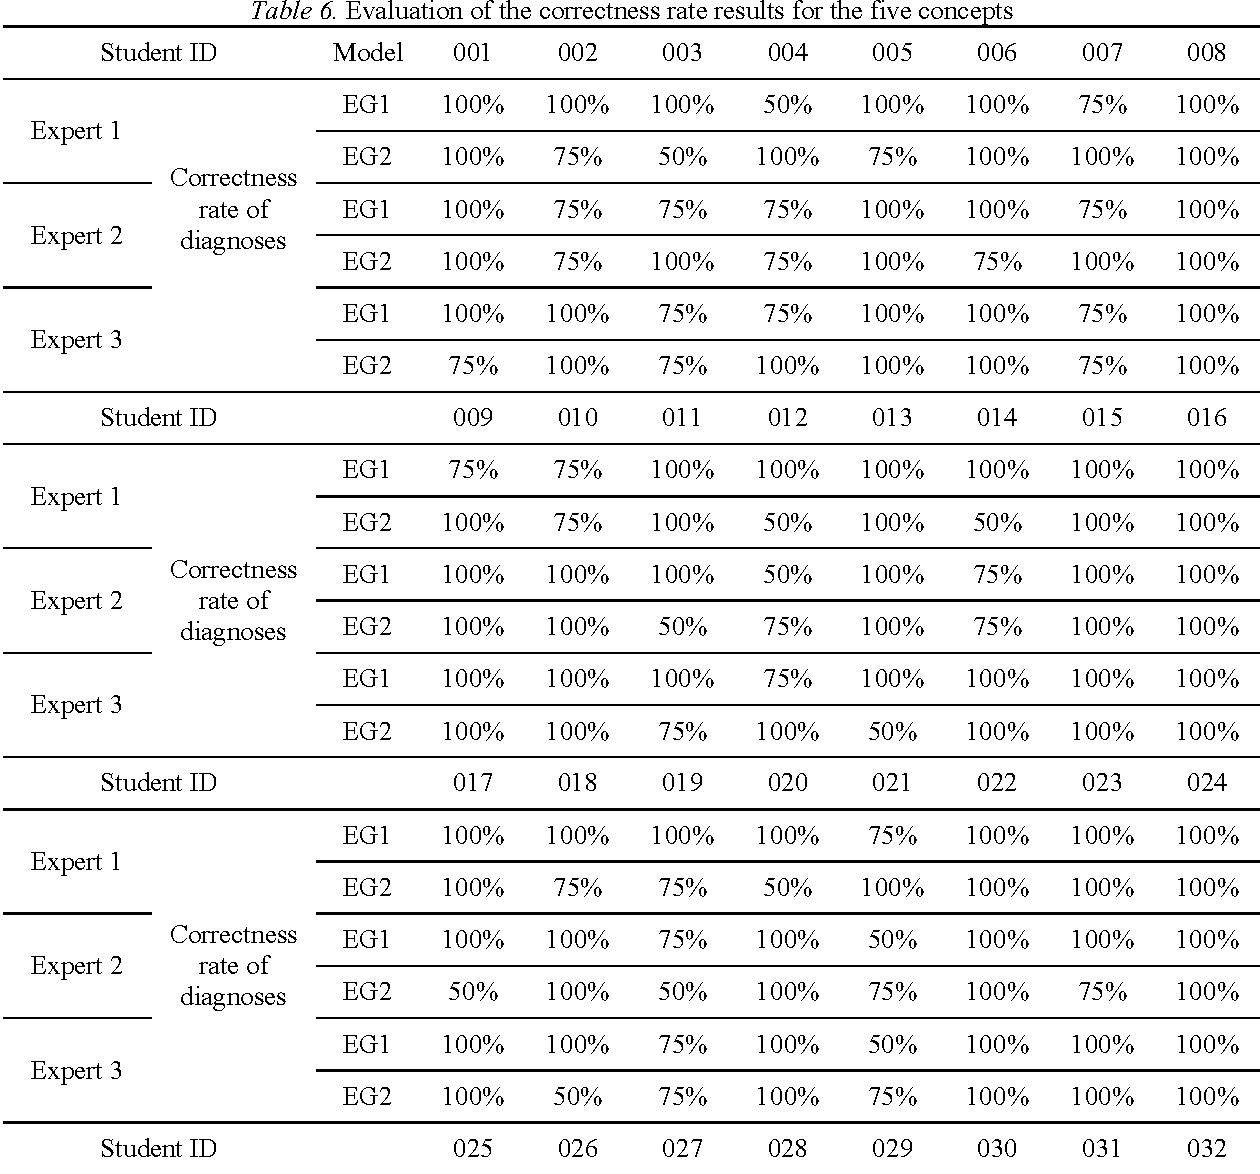 Table 6. Evaluation of the correctness rate results for the five concepts